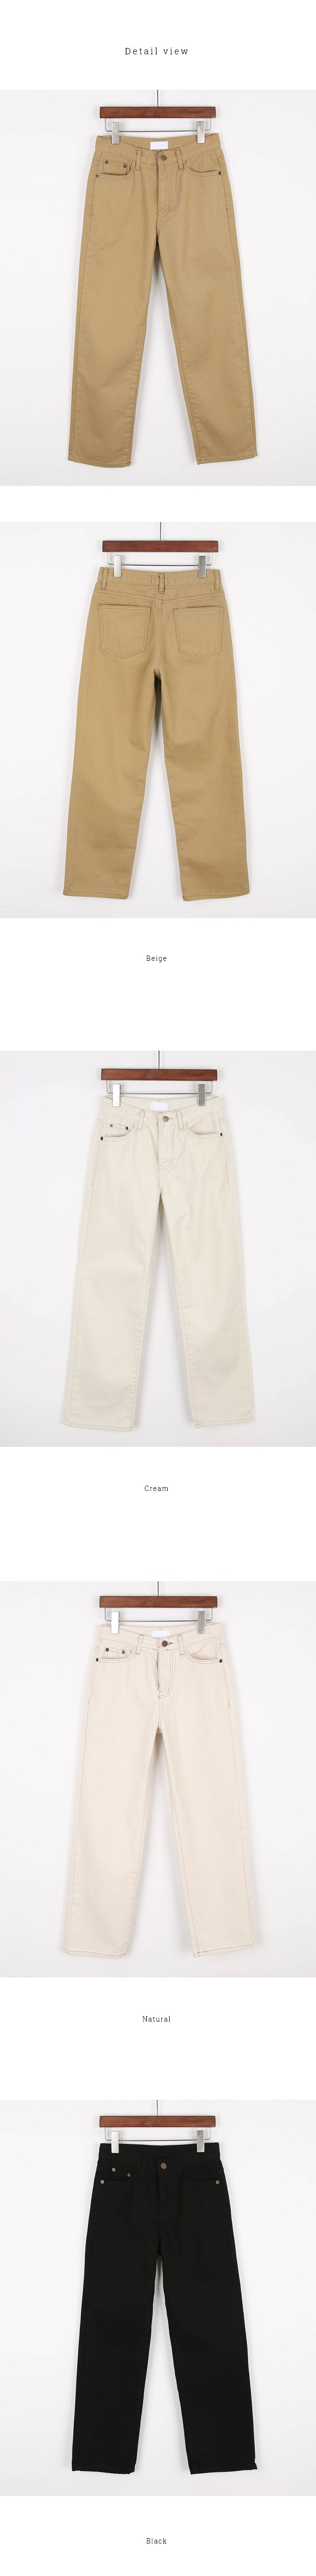 William cotton pants